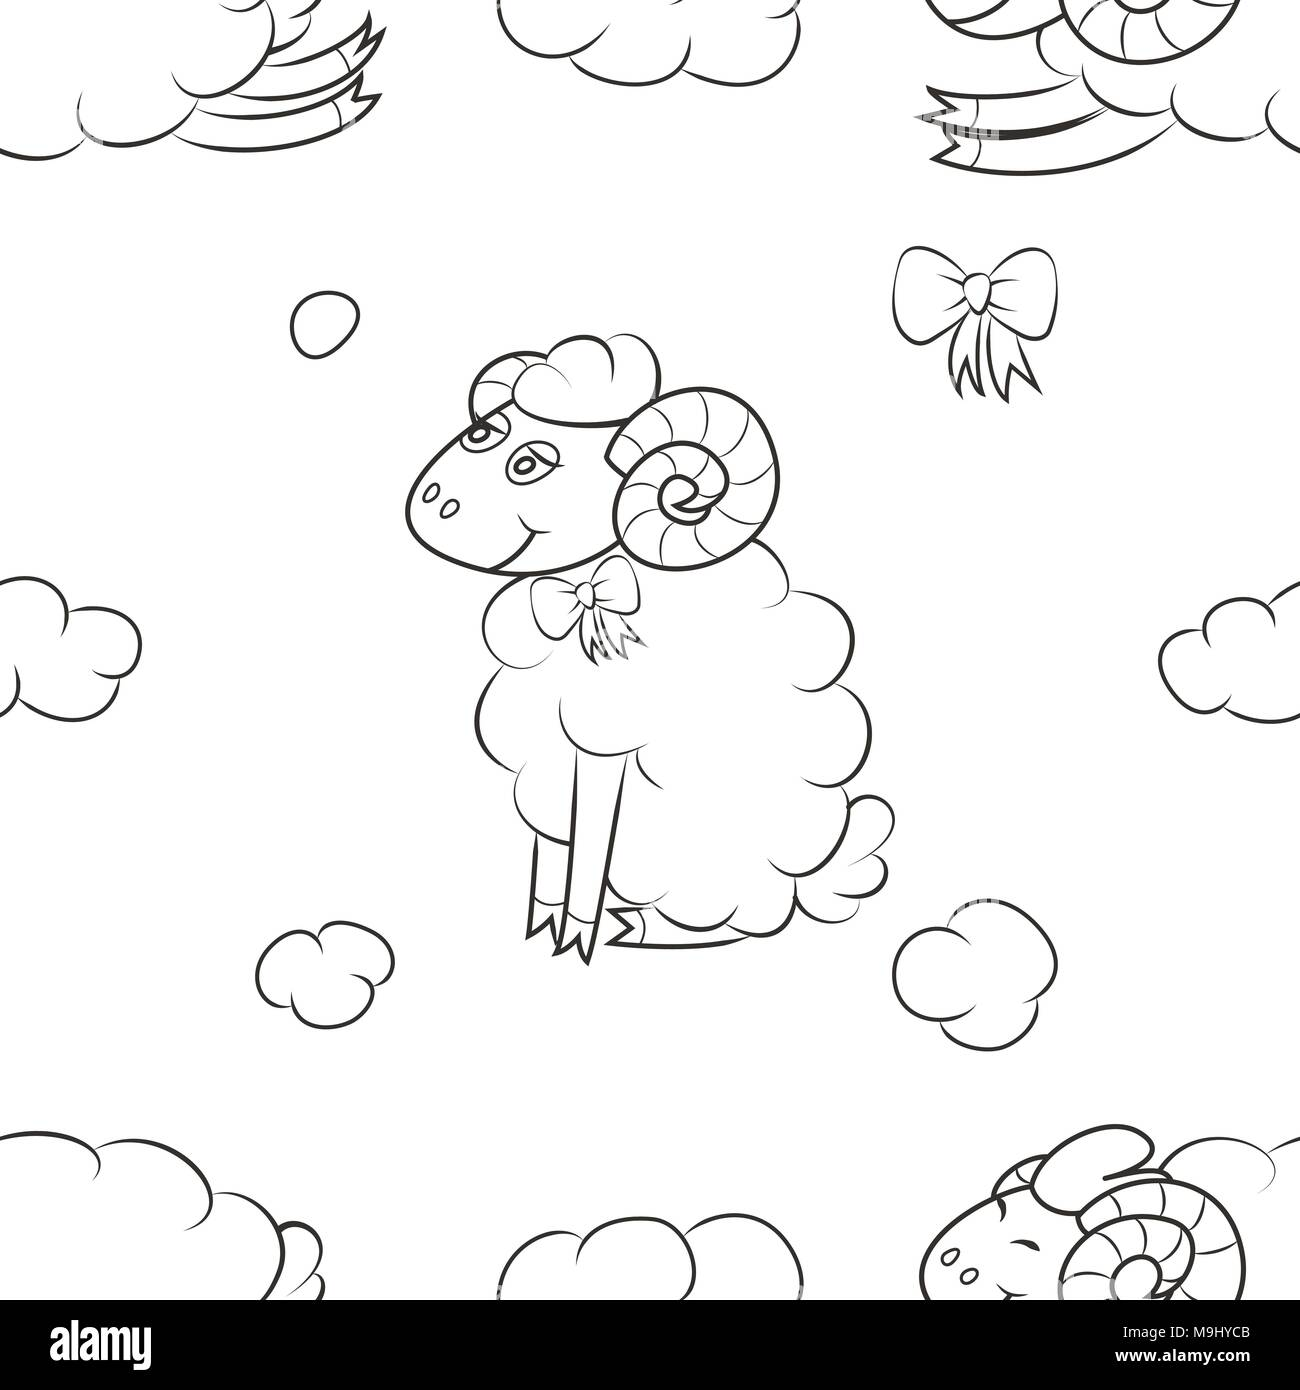 Fluffy sheep flying in the clouds - Stock Image